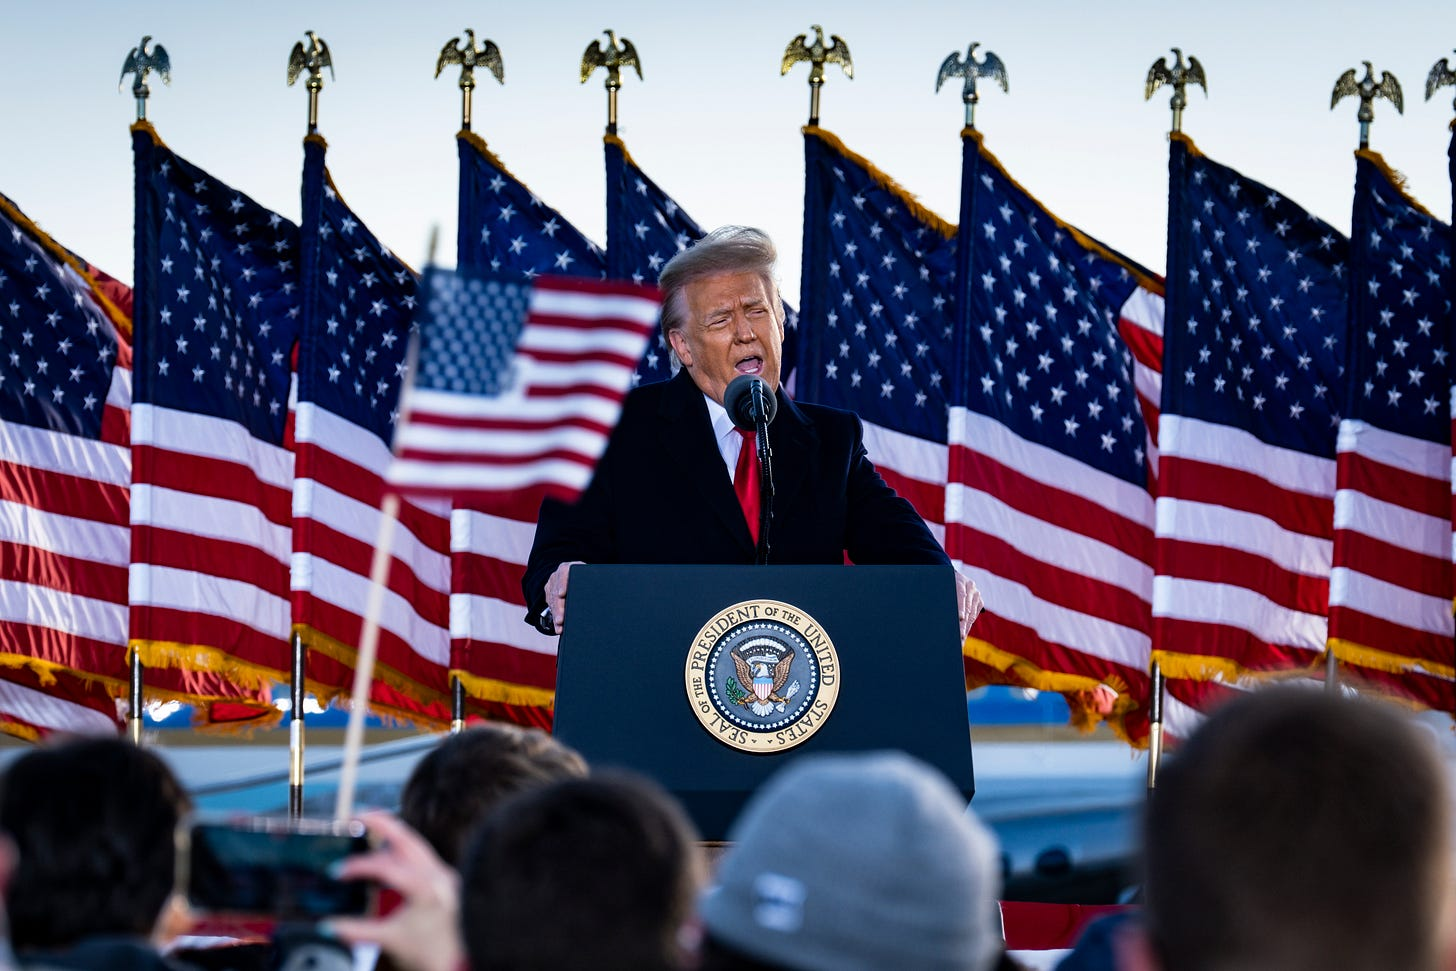 Donald Trump speaks to supporters at Joint Base Andrews for his last time as President on Wednesday. (Pete Marovich / Getty Images)